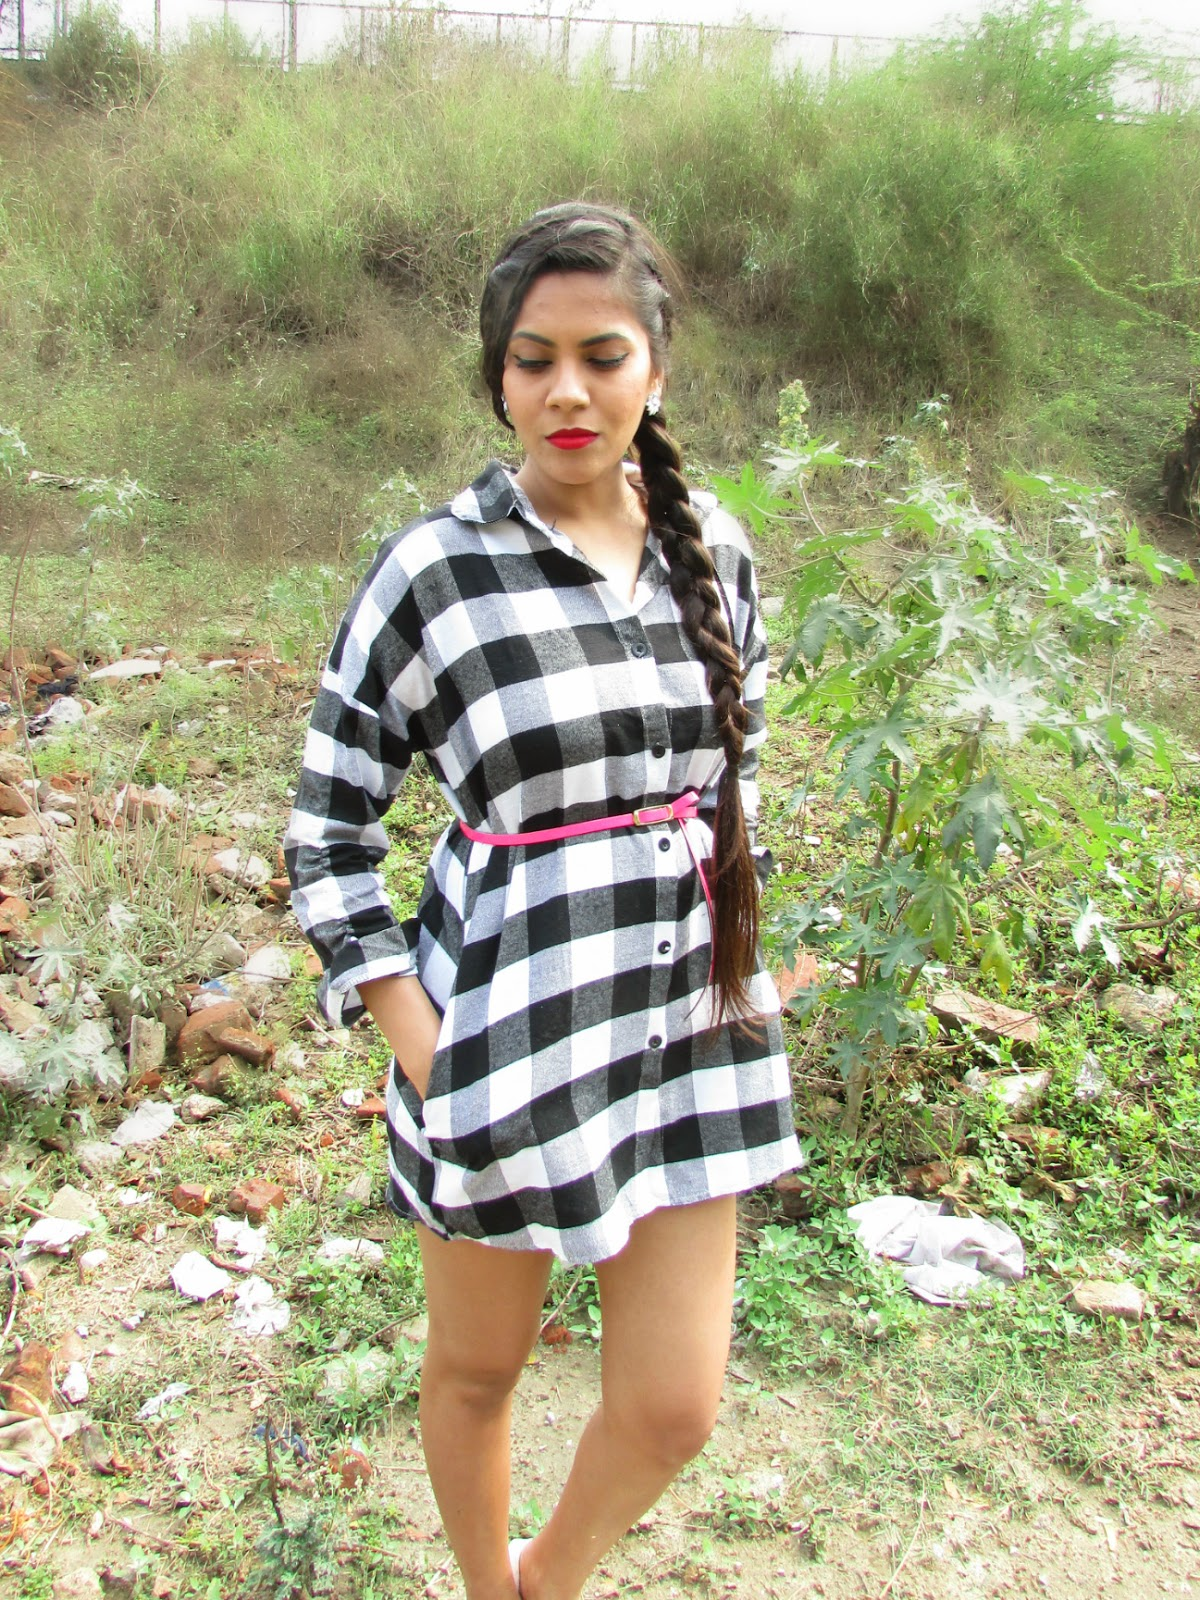 plaid long shirt, how to style plaid shirt, shirt dress, plaid shirt online, banggood review, indian blog, indian fashion blog, rainy day outfit, rainy day makeup, hainy day hairstyle,fashion,Silver, silver shoes, silver heels, sliver sandals, heels, sandals, glitter shoes, shoe cleavage , foot cleavage , Cinderella, Cinderella shoes, Cinderella heels, Cinderella silver shoes, summer footwear, summer sandals, summer heels, summer trends , white dress, summer dress, floral dress, red lips, boho hairstyle, boho hair bun, boho bun, hair bun, braids, Statement necklace, necklace, statement necklaces, big necklace, heavy necklaces , gold necklace, silver necklace, silver statement necklace, gold statement necklace, studded statement necklace , studded necklace, stone studded necklace, stone necklace, stove studded statement necklace, stone statement necklace, stone studded gold statement necklace, stone studded silver statement necklace, black stone necklace, black stone studded statement necklace, black stone necklace, black stone statement necklace, neon statement necklace, neon stone statement necklace, black and silver necklace, black and gold necklace, blank and silver statement necklace, black and gold statement necklace, silver jewellery, gold jewellery, stove jewellery, stone studded jewellery, imitation jewellery, artificial jewellery, junk jewellery, cheap jewellery ,banggood Statement necklace, banggood necklace, banggood statement necklaces,banggood big necklace, banggood heavy necklaces , banggood gold necklace, banggood silver necklace,  banggood statement necklace,banggood gold statement necklace,banggood studded statement necklace , banggood studded necklace, banggood stone studded necklace, banggood stone necklace, banggood stove studded statement necklace, banggood stone statement necklace, banggood stone studded gold statement necklace, banggood stone studded silver statement necklace, banggood black stone necklace, banggood black stone studded statement necklace, banggood black stone necklace, banggood black stone statement necklace, banggood neon statement necklace, banggood neon stone statement necklace, banggood black and silver necklace, banggood black and gold necklace, banggood black  and silver statement necklace, banggood black and gold statement necklace, silver jewellery, banggood gold jewellery, banggood stove jewellery, banggood stone studded jewellery, banggood imitation jewellery, banggood artificial jewellery, banggood junk jewellery, blackfive cheap jewellery ,Cheap Statement necklace, Cheap necklace, Cheap statement necklaces,Cheap big necklace, Cheap heavy necklaces , Cheap gold necklace, Cheap silver necklace, Cheap silver statement necklace,Cheap gold statement necklace, Cheap studded statement necklace , Cheap studded necklace, Cheap stone studded necklace, Cheap stone necklace, Cheap stove studded statement necklace, Cheap stone statement necklace, Cheap stone studded gold statement necklace, Cheap stone studded silver statement necklace, Cheap black stone necklace, Cheap black stone studded statement necklace, Cheap black stone necklace, Cheap black stone statement necklace, Cheap neon statement necklace, Cheap neon stone statement necklace, Cheap black and silver necklace, Cheap black and gold necklace, Cheap black  and silver statement necklace, Cheap black and gold statement necklace, silver jewellery, Cheap gold jewellery, Cheap stove jewellery, Cheap stone studded jewellery, Cheap imitation jewellery, Cheap artificial jewellery, Cheap junk jewellery, Cheap cheap jewellery , Black pullover, black and grey pullover, black and white pullover, back cutout, back cutout pullover, back cutout sweater, back cutout jacket, back cutout top, back cutout tee, back cutout tee shirt, back cutout shirt, back cutout dress, back cutout trend, back cutout summer dress, back cutout spring dress, back cutout winter dress, High low pullover, High low sweater, High low jacket, High low top, High low tee, High low tee shirt, High low shirt, High low dress, High low trend, High low summer dress, High low spring dress, High low winter dress,banggood Black pullover, banggood black and grey pullover, banggood black and white pullover, banggood back cutout, banggood back cutout pullover, banggood back cutout sweater, banggood back cutout jacket, banggood back cutout top, banggood back cutout tee, shopclues back cutout tee shirt, banggood back cutout shirt, banggood back cutout dress, banggood back cutout trend, banggood back cutout summer dress, banggood back cutout spring dress, banggood back cutout winter dress, banggood High low pullover, banggood High low sweater, banggood High low jacket, ocrun High low top, banggood High low tee, ocrun High low tee shirt, banggood High low shirt, banggood High low dress, banggood High low trend, banggood High low summer dress, banggood High low spring dress, banggood High low winter dress, Cropped, cropped tee,cropped tee shirt , cropped shirt, cropped sweater, cropped pullover, cropped cardigan, cropped top, cropped tank top, Cheap Cropped, cheap cropped tee,cheap cropped tee shirt ,cheap  cropped shirt, cheap cropped sweater, cheap cropped pullover, cheap cropped cardigan,cheap  cropped top, cheap cropped tank top,banggood Cropped, banggood cropped tee, banggood cropped tee shirt , banggood cropped shirt, banggood cropped sweater, banggood cropped pullover, banggood cropped cardigan, banggood cropped top, banggood cropped  top, Winter Cropped, winter cropped tee, winter cropped tee shirt , winter cropped shirt, winter cropped sweater, winter cropped pullover, winter cropped cardigan, winter cropped top, winter cropped tank top,Leggings, winter leggings, warm leggings, winter warm leggings, fall leggings, fall warm leggings, tights, warm tights, winter tights, winter warm tights, fall tights, fall warm tights,banggood leggings, banggood tights, warm warm leggings, banggood warm tights, banggood winter warm tights, banggood fall warm tights, woollen tights , woollen leggings, shopclues woollen tights, banggood woollen leggings, woollen bottoms, banggood woollen bottoms, banggood woollen pants , woollen pants,  Christmas , Christmas leggings, Christmas tights, shopclues Christmas, shopclues Christmas clothes, clothes for Christmas , shopclues Christmas leggings, shopclues Christmas tights, shopclues warm Christmas leggings, shopclues warm Christmas  tights, shopclues snowflake leggings, snowflake leggings, snowflake tights, shopclues rain deer tights, shopclues rain deer leggings, ugly Christmas sweater, Christmas tree, Christmas clothes, Santa clause,Wishlist, clothes wishlist, banggood wishlist, banggood, banggood.net, banggood wishlist, autumn wishlist,banggood ocrun wishlist, banggood.comautumn clothes wishlist, autumn shoes wishlist, autumn bags wishlist, autumn boots wishlist, autumn pullovers wishlist, autumn cardigans wishlist, autymn coats wishlist, banggood clothes wishlist, banggood bags wishlist, banggood bags wishlist, banggood boots wishlist, banggood pullover wishlist, banggood cardigans wishlist, banggood autum clothes wishlist,winter clothes, wibter clothes wishlist, winter wishlist, wibter pullover wishlist, winter bags wishlist, winter boots wishlist, winter cardigans wishlist, winter leggings wishlist, banggood winter clothes, banggood autumn clothes, banggood winter collection, banggood autumn collection,Cheap clothes online,cheap dresses online, cheap jumpsuites online, cheap leggings online, cheap shoes online, cheap wedges online , cheap skirts online, cheap jewellery online, cheap jackets online, cheap jeans online, cheap maxi online, cheap makeup online, cheap cardigans online, cheap accessories online, cheap coats online,cheap brushes online,cheap tops online, chines clothes online, Chinese clothes,Chinese jewellery ,Chinese jewellery online,Chinese heels online,Chinese electronics online,Chinese garments,Chinese garments online,Chinese products,Chinese products online,Chinese accessories online,Chinese inline clothing shop,Chinese online shop,Chinese online shoes shop,Chinese online jewellery shop,Chinese cheap clothes online,Chinese  clothes shop online, korean online shop,korean garments,korean makeup,korean makeup shop,korean makeup online,korean online clothes,korean online shop,korean clothes shop online,korean dresses online,korean dresses online,cheap Chinese clothes,cheap korean clothes,cheap Chinese makeup,cheap korean makeup,cheap korean shopping ,cheap Chinese shopping,cheap Chinese online shopping,cheap korean online shopping,cheap Chinese shopping website,cheap korean shopping website, cheap online shopping,online shopping,how to shop online ,how to shop clothes online,how to shop shoes online,how to shop jewellery online,how to shop mens clothes online, mens shopping online,boys shopping online,boys jewellery online,mens online shopping,mens online shopping website,best Chinese shopping website, Chinese online shopping website for men,best online shopping website for women,best korean online shopping,best korean online shopping website,korean fashion,korean fashion for women,korean fashion for men,korean fashion for girls,korean fashion for boys,best chinese online shopping,best chinese shopping website,best chinese online shopping website,wholesale chinese shopping website,wholesale shopping website,chinese wholesale shopping online,chinese wholesale shopping, chinese online shopping on wholesale prices, clothes on wholesale prices,cholthes on wholesake prices,clothes online on wholesales prices,online shopping, online clothes shopping, online jewelry shopping,how to shop online, how to shop clothes online, how to shop earrings online, how to shop,skirts online, dresses online,jeans online, shorts online, tops online, blouses online,shop tops online, shop blouses online, shop skirts online, shop dresses online, shop botoms online, shop summer dresses online, shop bracelets online, shop earrings online, shop necklace online, shop rings online, shop highy low skirts online, shop sexy dresses onle, men's clothes online, men's shirts online,men's jeans online, mens.s jackets online, mens sweaters online, mens clothes, winter coats online, sweaters online, cardigens online,beauty , fashion,beauty and fashion,beauty blog, fashion blog , indian beauty blog,indian fashion blog, beauty and fashion blog, indian beauty and fashion blog, indian bloggers, indian beauty bloggers, indian fashion bloggers,indian bloggers online, top 10 indian bloggers, top indian bloggers,top 10 fashion bloggers, indian bloggers on blogspot,home remedies, how to,banggood online shopping,banggood online shopping review,banggood.com review,banggood online clothing store,banggood online chinese store,banggood online shopping,banggood site review,banggood.com site review, banggood Chines fashion, banggood , banggood.com, ocrun clothing, banggood dresses, banggood shoes, banggood accessories,banggood men cloths ,banggood makeup, ocrun helth products,banggood Chinese online shopping, banggood Chinese store, banggood online chinese shopping, banggood lchinese shopping online,banggood, banggood dresses, banggood clothes, banggood garments, banggood clothes, banggood skirts, banggood pants, ocrun tops, banggood cardigans, banggood leggings, banggood fashion , banggood clothes fashion, banggood footwear, banggood fashion footwear, banggood jewellery, ocrun fashion jewellery, banggood rings, ocrun necklace, banggood bracelets, banggood earings,Autumn, fashion, banggood, wishlist,Winter,fall, fall abd winter, winter clothes , fall clothes, fall and winter clothes, fall jacket, winter jacket, fall and winter jacket, fall blazer, winter blazer, fall and winter blazer, fall coat , winter coat, falland winter coat, fall coverup, winter coverup, fall and winter coverup, outerwear, coat , jacket, blazer, fall outerwear, winter outerwear, fall and winter outerwear, woolen clothes, wollen coat, woolen blazer, woolen jacket, woolen outerwear, warm outerwear, warm jacket, warm coat, warm blazer, warm sweater, coat , white coat, white blazer, white coat, white woolen blazer, white coverup, white woolens, banggood online shopping review,banggood.com review,banggood online clothing store,banggood online chinese store,banggood online shopping,banggood site review, banggood.com site review, banggood Chines fashion, banggood , banggood.com, banggood clothing, ocrun dresses, banggood shoes, banggood accessories,banggood men cloths ,banggood makeup, ocrun helth products,banggood Chinese online shopping, banggood Chinese store, banggood online chinese shopping, banggood chinese shopping online,banggood, ocrun dresses, banggood clothes, ocrun garments, banggood clothes, blackfive skirts, banggood pants, banggood tops, banggood cardigans, banggood leggings, banggood fashion , banggood clothes fashion, banggood footwear, banggood fashion footwear, banggood jewellery, banggood fashion jewellery, banggood rings, banggood necklace, ocrun bracelets, banggood earings,latest fashion trends online, online shopping, online shopping in india, online shopping in india from america, best online shopping store , best fashion clothing store, best online fashion clothing store, best online jewellery store, best online footwear store, best online store, beat online store for clothes, best online store for footwear, best online store for jewellery, best online store for dresses, worldwide shipping free, free shipping worldwide, online store with free shipping worldwide,best online store with worldwide shipping free,low shipping cost, low shipping cost for shipping to india, low shipping cost for shipping to asia, low shipping cost for shipping to korea,Friendship day , friendship's day, happy friendship's day, friendship day outfit, friendship's day outfit, how to wear floral shorts, floral shorts, styling floral shorts, how to style floral shorts, how to wear shorts, how to style shorts, how to style style denim shorts, how to wear denim shorts,how to wear printed shorts, how to style printed shorts, printed shorts, denim shorts, how to style black shorts, how to wear black shorts, how to wear black shorts with black T-shirts, how to wear black T-shirt, how to style a black T-shirt, how to wear a plain black T-shirt, how to style black T-shirt,how to wear shorts and T-shirt, what to wear with floral shorts, what to wear with black floral shorts,how to wear all black outfit, what to wear on friendship day, what to wear on a date, what to wear on a lunch date, what to wear on lunch, what to wear to a friends house, what to wear on a friends get together, what to wear on friends coffee date , what to wear for coffee,beauty,Pink, pink pullover, pink sweater, pink jumpsuit, pink sweatshirt, neon pink, neon pink sweater, neon pink pullover, neon pink jumpsuit , neon pink cardigan, cardigan , pink cardigan, sweater, jumper, jumpsuit, pink jumper, neon pink jumper, pink jacket, neon pink jacket, winter clothes, oversized coat, oversized winter clothes, oversized pink coat, oversized coat, oversized jacket, banggood pink, banggood pink sweater, banggood pink jacket, banggood pink cardigan, banggood pink coat, banggood pink jumper, banggood neon pink, banggood neon pink jacket, banggood neon pink coat, banggood neon pink sweater, banggood neon pink jumper, banggood neon pink pullover, pink pullover, neon pink pullover,fur,furcoat,furjacket,furblazer,fur pullover,fur cardigan,front open fur coat,front open fur jacket,front open fur blazer,front open fur pullover,front open fur cardigan,real fur, real fur coat,real fur jacket,real fur blazer,real fur pullover,real fur cardigan, soft fur,soft fur coat,soft fur jacket,soft furblazer,soft fur pullover,sof fur cardigan, white fur,white fur coat,white fur jacket,white fur blazer, white fur pullover, white fur cardigan,trench, trench coat, trench coat online, trench coat india, trench coat online India, trench cost price, trench coat price online, trench coat online price, cheap trench coat, cheap trench coat online, cheap trench coat india, cheap trench coat online India, cheap trench coat , Chinese trench coat, Chinese coat, cheap Chinese trench coat, Korean coat, Korean trench coat, British coat, British trench coat, British trench coat online, British trench coat online, New York trench coat, New York trench coat online, cheap new your trench coat, American trench coat, American trench coat online, cheap American trench coat, low price trench coat, low price trench coat online , low price trench coat online india, low price trench coat india, banggood trench, banggood trench coat, banggood trench coat online, banggood trench coat india, banggood trench coat online India, banggood trench cost price,banggood trench coat price online, banggood trench coat online price, banggood cheap trench coat,  banggood trench coat online, banggood cheap trench coat india, banggood cheap trench coat online India, banggood cheap trench coat , banggood Chinese trench coat, ocrun Chinese coat, banggood cheap Chinese trench coat, banggood Korean coat, ocrun Korean trench coat, banggood British coat, banggood British trench coat, banggood British trench coat online, banggood British trench coat online, banggood New York trench coat, banggood New York trench coat online, banggood cheap new your trench coat, banggood American trench coat, banggood American trench coat online, banggood cheap American trench coat, banggood low price trench coat, banggood low price trench coat online , banggood low price trench coat online india, banggood low price trench coat india, how to wear trench coat, how to wear trench, how to style trench coat, how to style coats, how to style long coats, how to style winter coats, how to style winter trench coats, how to style winter long coats, how to style warm coats, how to style beige coat, how to style beige long coat, how to style beige trench coat, how to style beige coat, beige coat, beige long coat, beige long coat, beige frock coat, beige double breasted coat, double breasted coat, how to style frock coat, how to style double breasted coat, how to wear beige trench coat,how to wear beige coat, how to wear beige long coat, how to wear beige frock coat, how to wear beige double button coat, how to wear beige double breat coat, double button coat, what us trench coat, uses of trench coat, what is frock coat, uses of frock coat, what is long coat, uses of long coat, what is double breat coat, uses of double breasted coat, what is bouton up coat, uses of button up coat, what is double button coat, uses of double button coat, velvet leggings, velvet tights, velvet bottoms, embroided velvet leggings, embroided velvet tights, pattern tights, velvet pattern tights, floral tights , floral velvet tights, velvet floral tights, embroided  velvet leggings, pattern leggings , velvet pattern leggings , floral leggings , floral velvet leggings, velvet floral leggings ,eyeboxs velvet leggings, banggood velvet tights, banggood velvet bottoms,banggood embroided velvet leggings,banggood embroided velvet tights, banggood pattern tights, banggood velvet pattern tights, banggood floral tights , banggood floral velvet tights, banggood velvet floral tights, banggood embroided  velvet leggings, banggood pattern leggings , banggood velvet pattern leggings , banggood floral leggings ,banggood floral velvet leggings, banggood velvet floral leggings ,banggood studded heels, studded heels , stud heels, valentinos , valentino heels, valentine shoes, valentino studded shoes, valentino studded heels, valentino studded sandels, black valentino, valentino footwear ,shoe sale , valentino look alikes, cartoon tee , cartoon , cartoon print , cartoon pattern , cartoon shirt , cartoon top , cartoon print top , cartoon print shirt, cartoon paint shorts , cartoon print tee